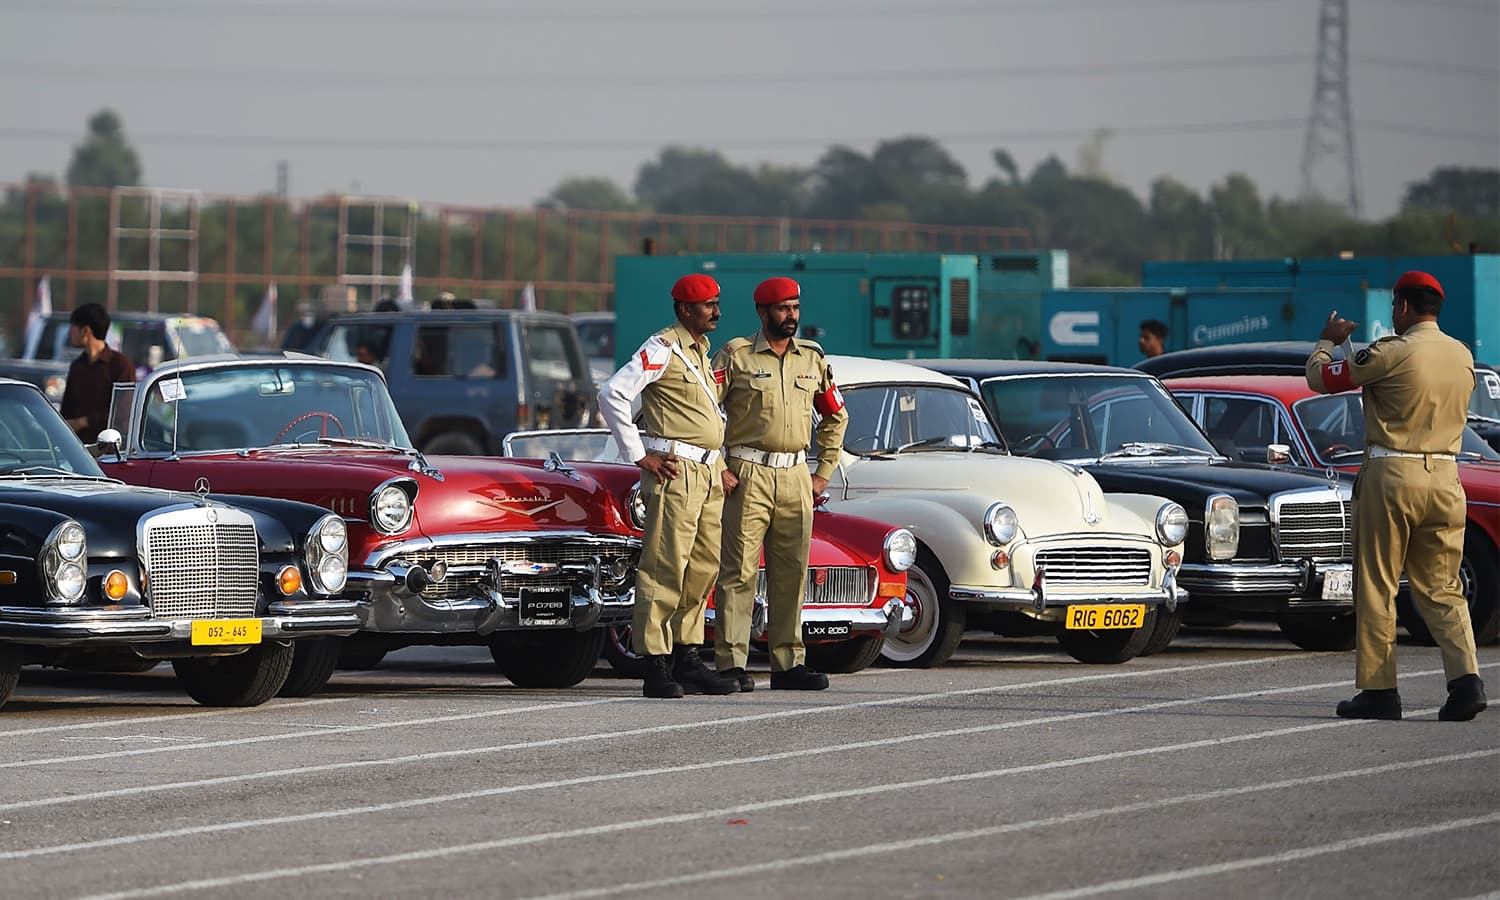 Pakistani Army personnel pose for a picture in front of vintage cars at the end of Motor Rally in Islamabad.— AFP